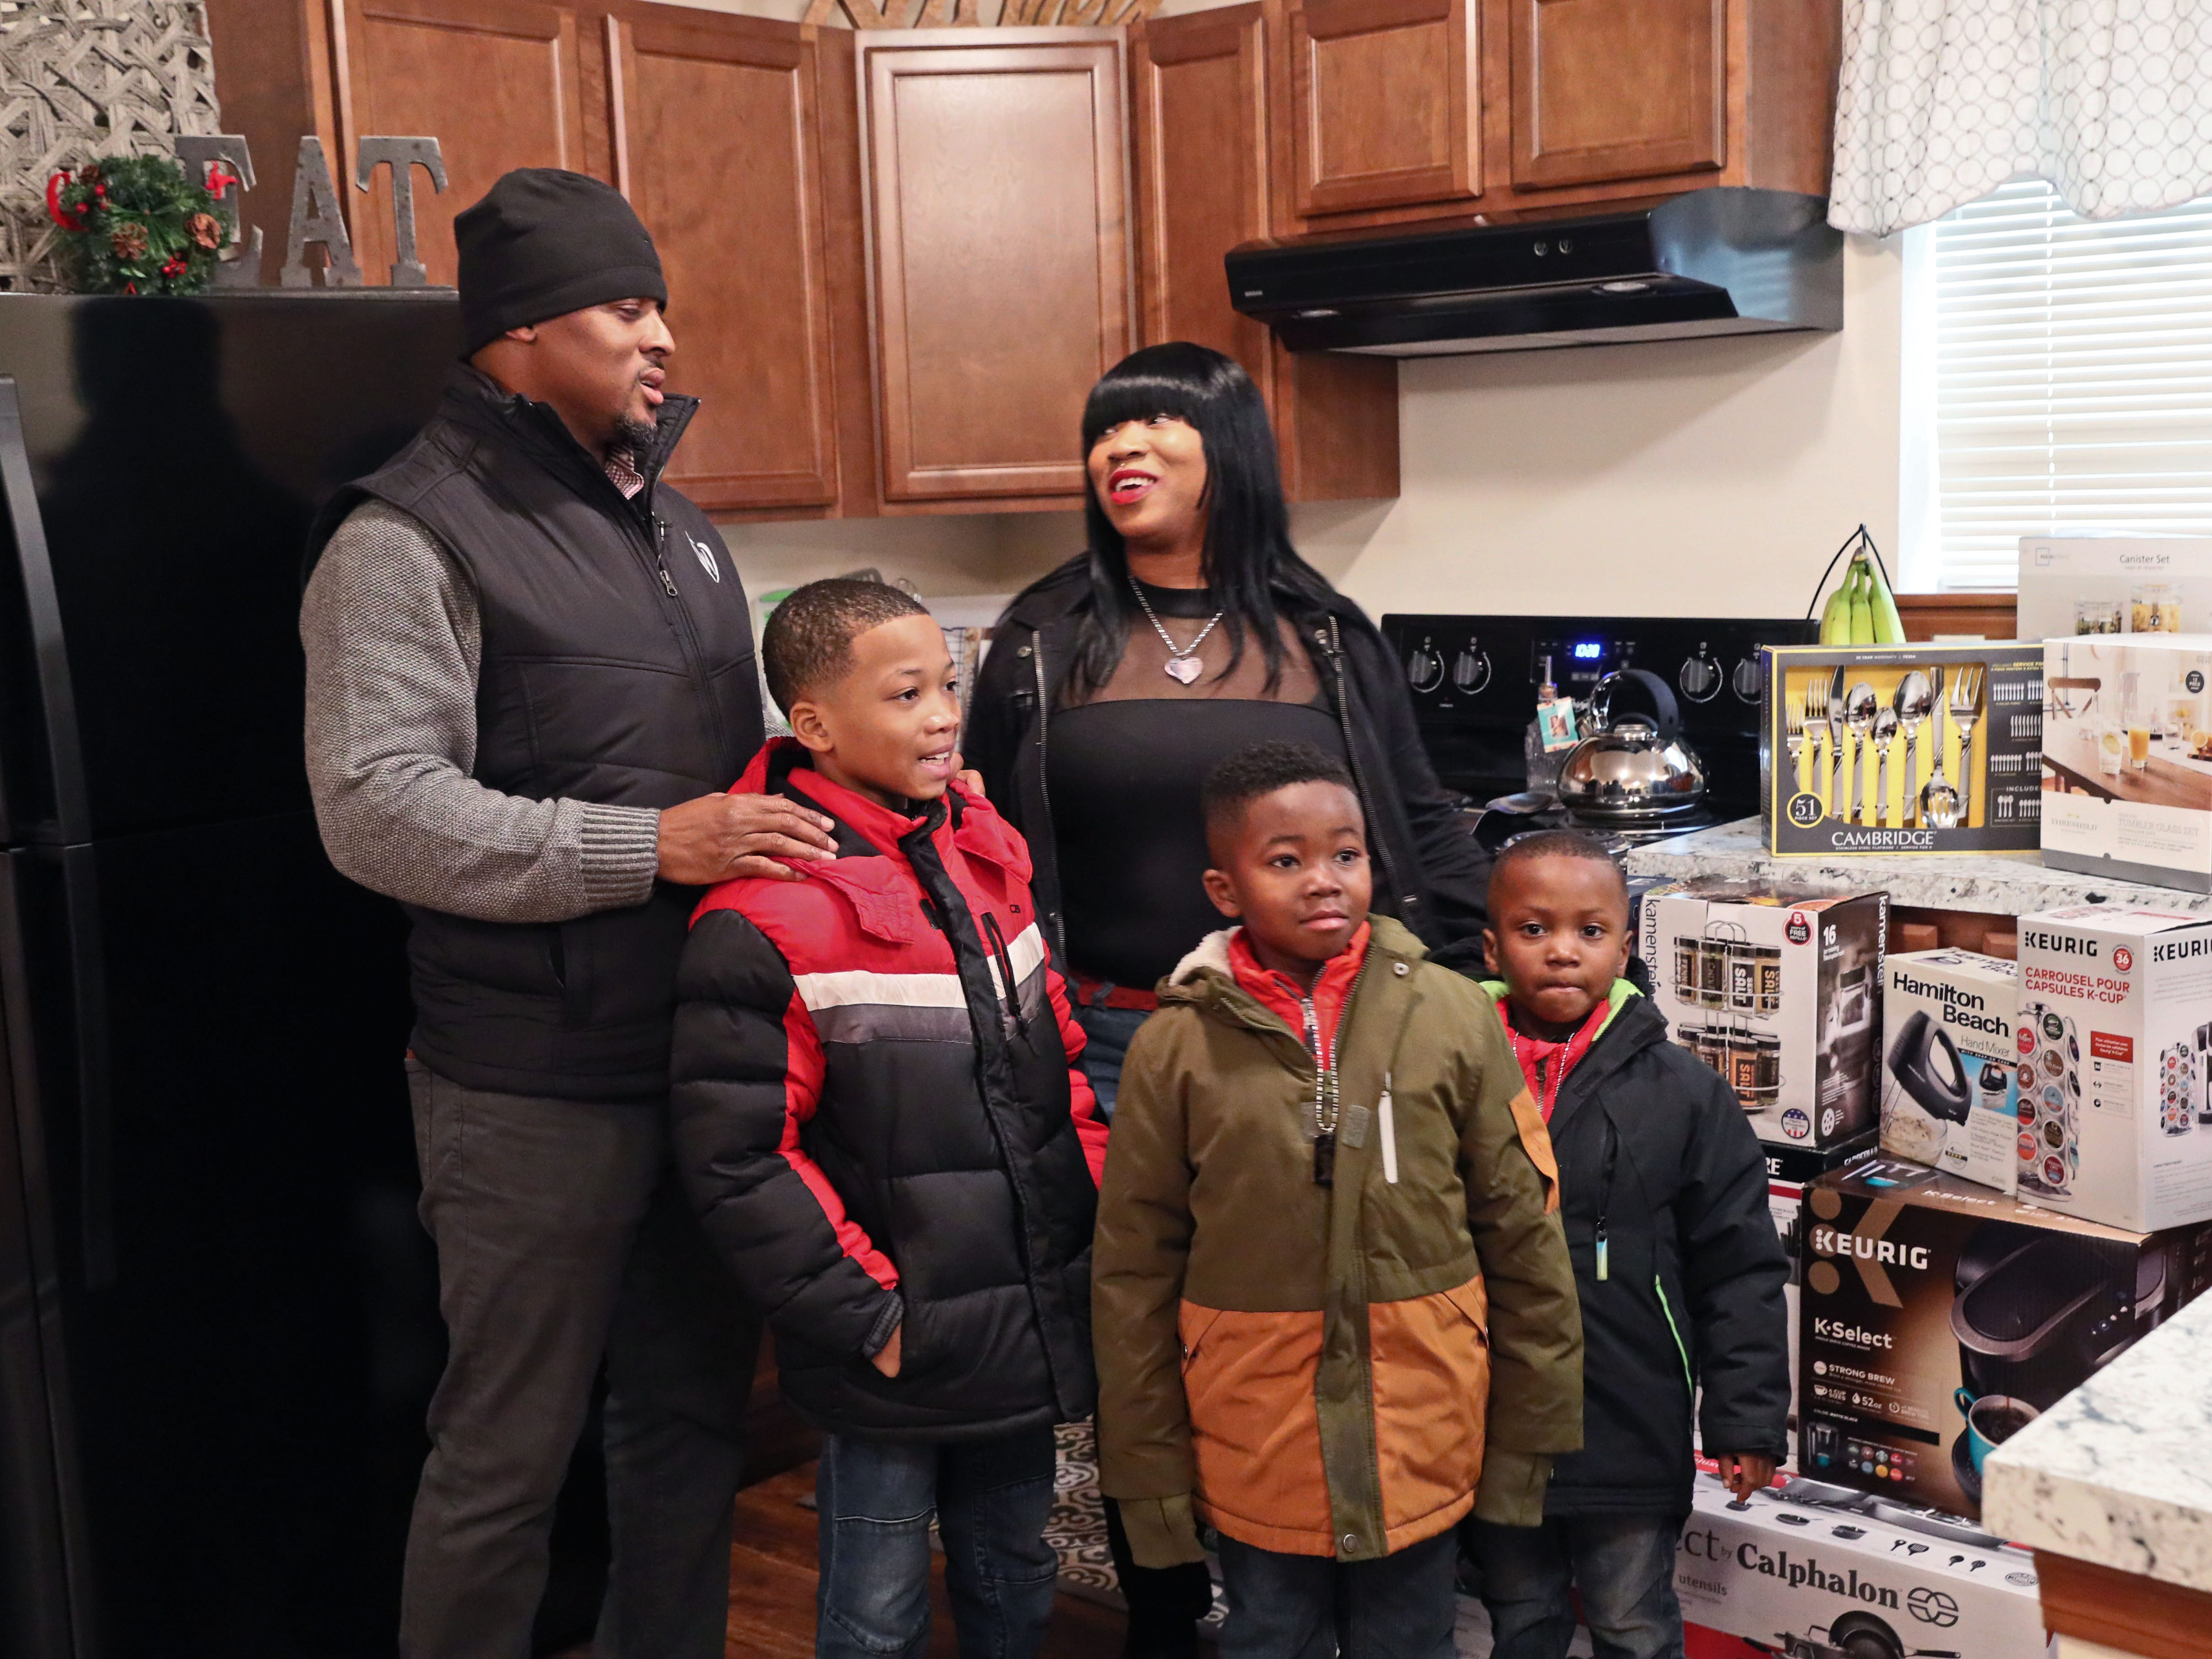 Warrick Dunn and Sade and her children tour the kitchen.